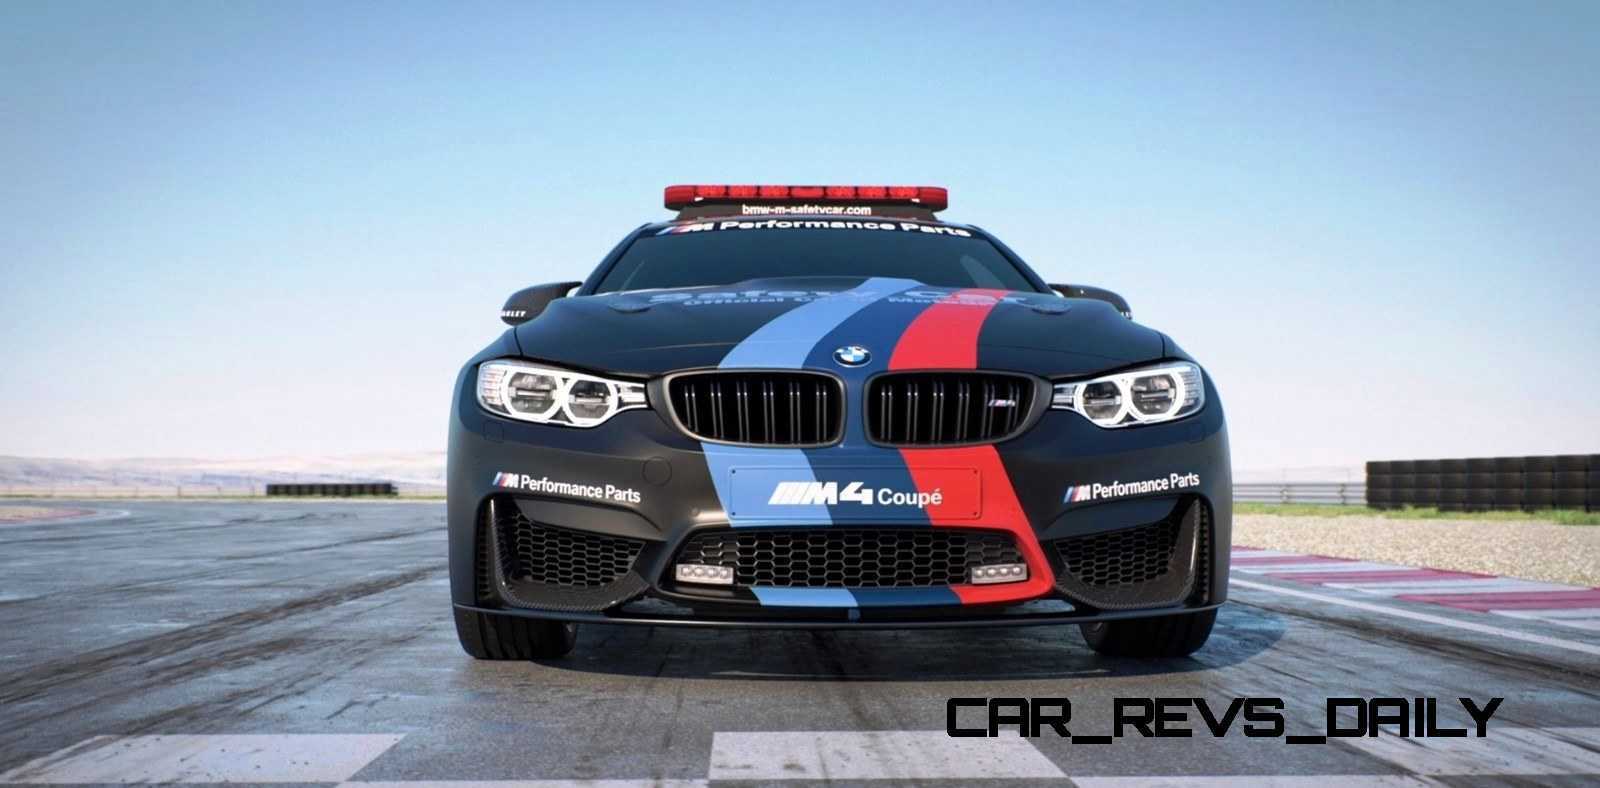 2015 Bmw M4 Motogp Safety Car New Hydro Cooled Boost Vaporization 4